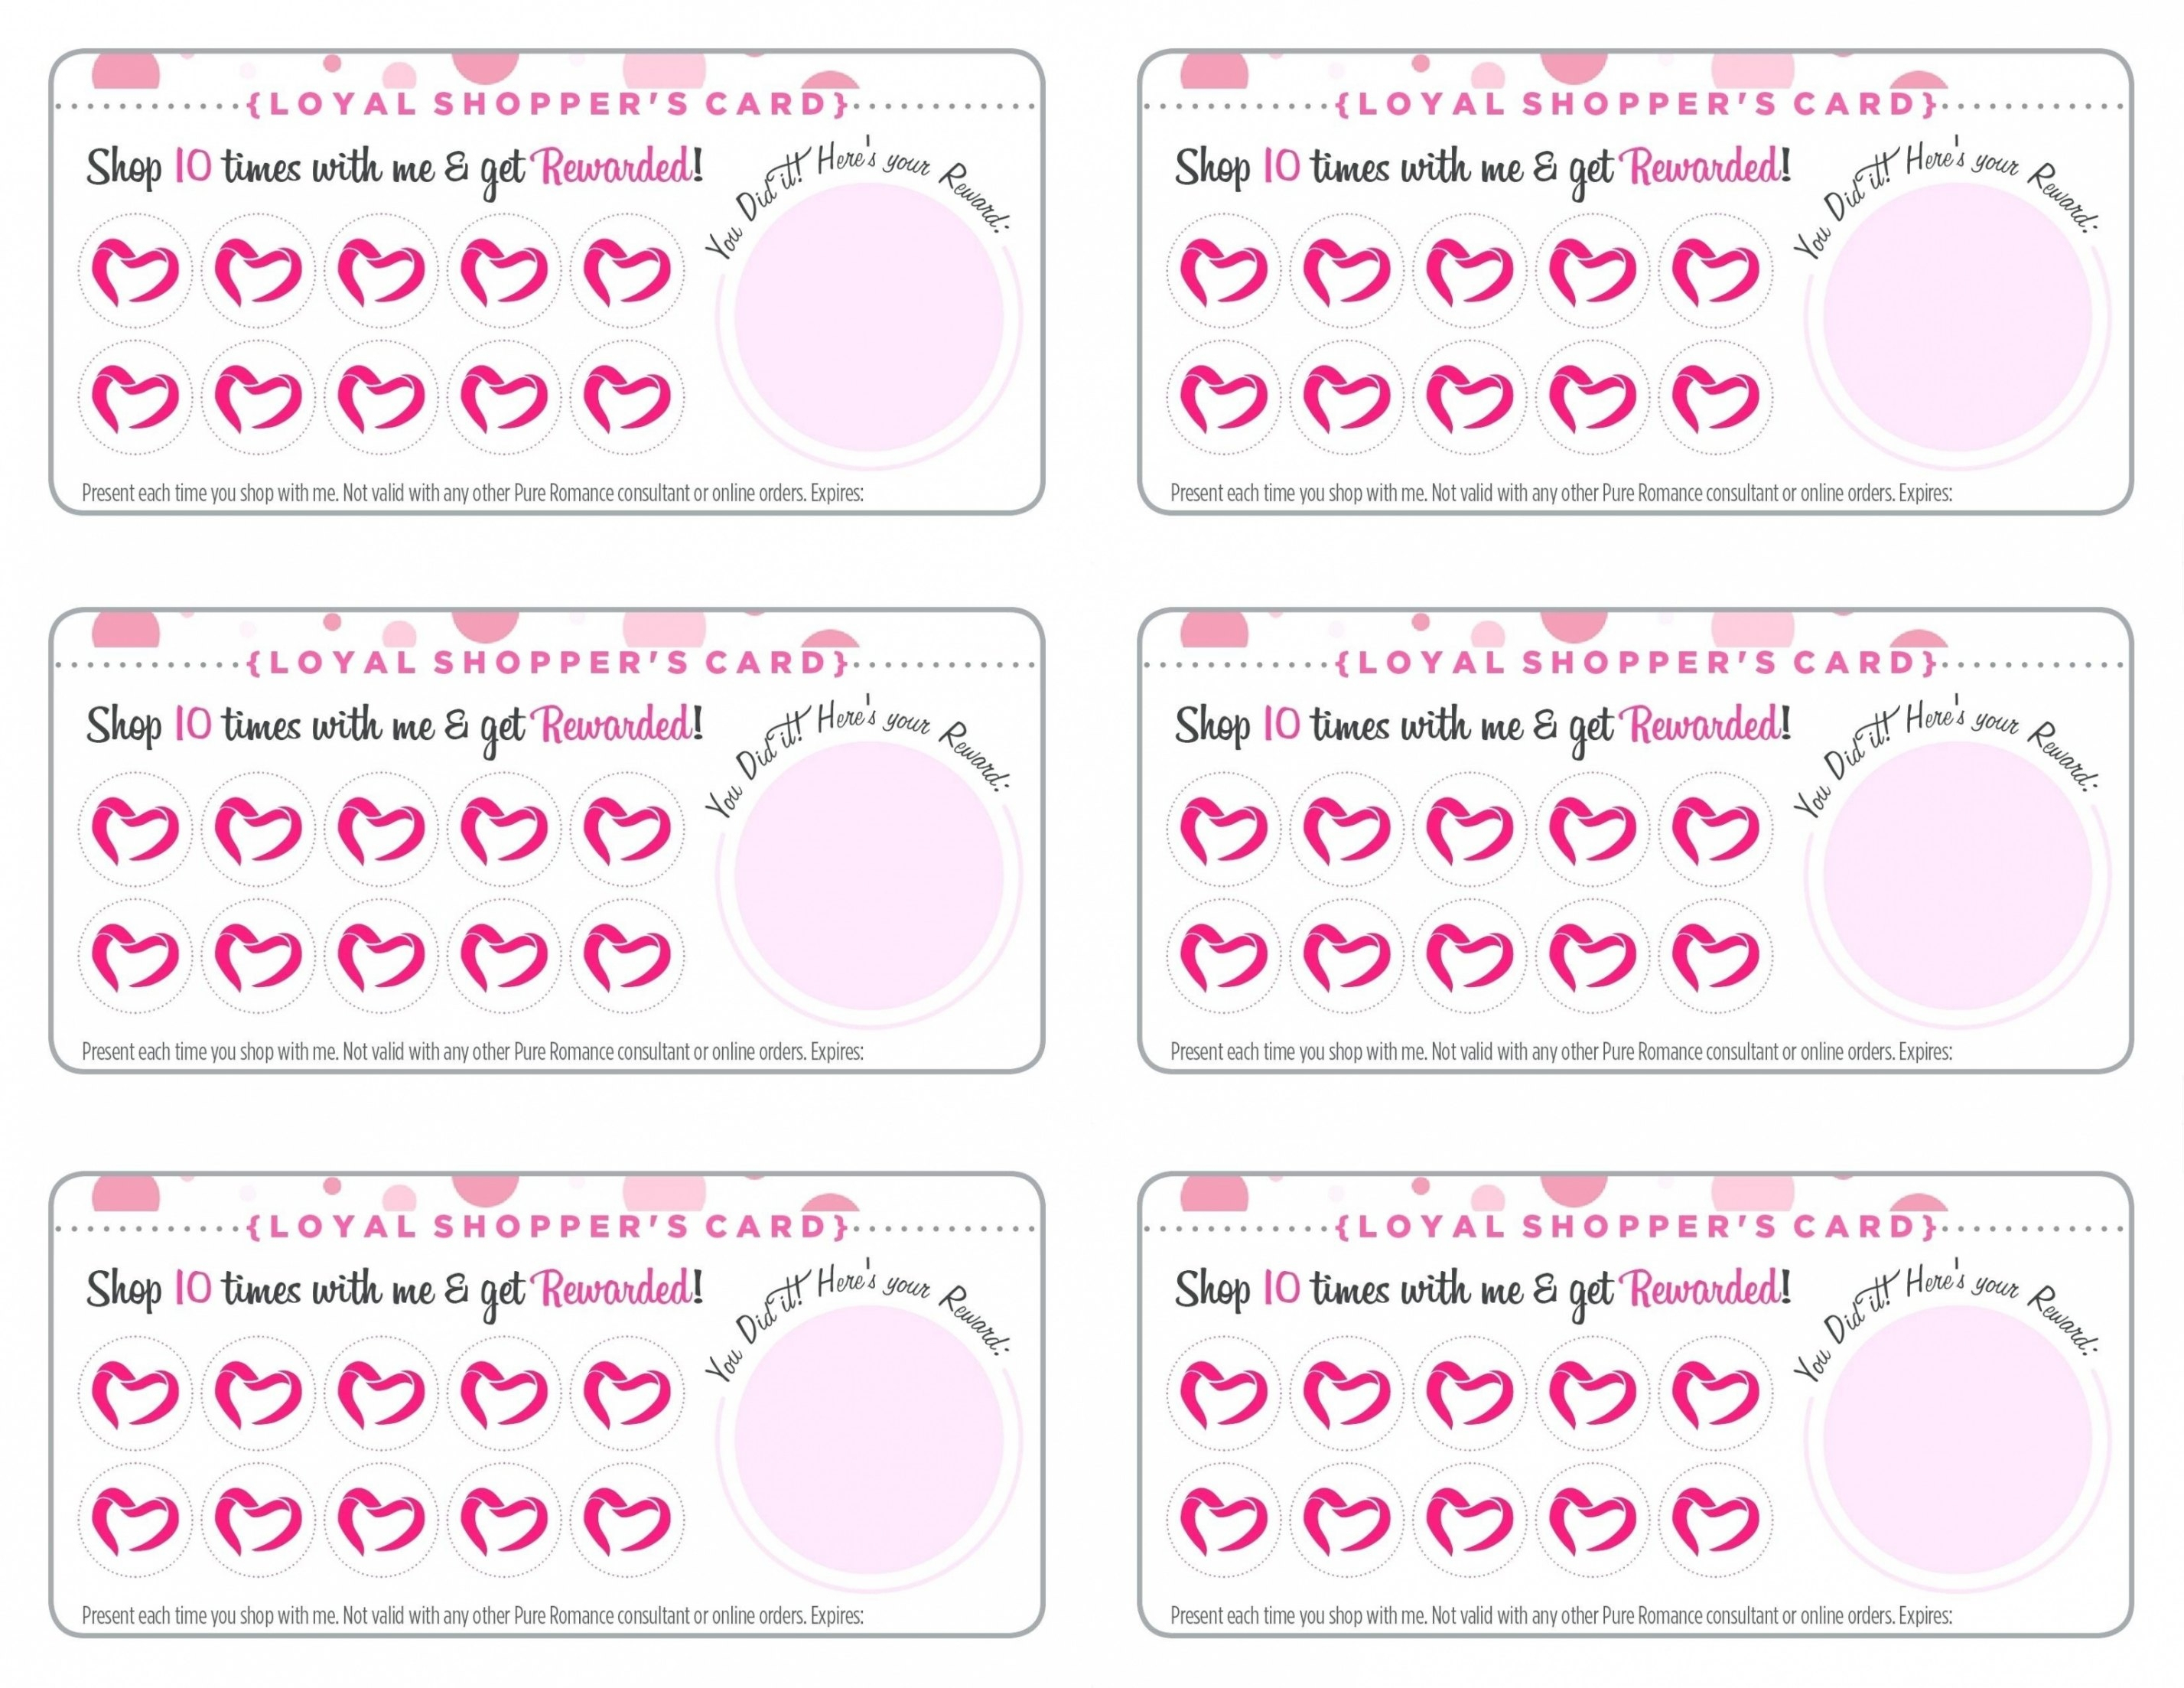 021 Free Printable Card Templates Punch Template Unique Loyalty - Free Printable Loyalty Card Template